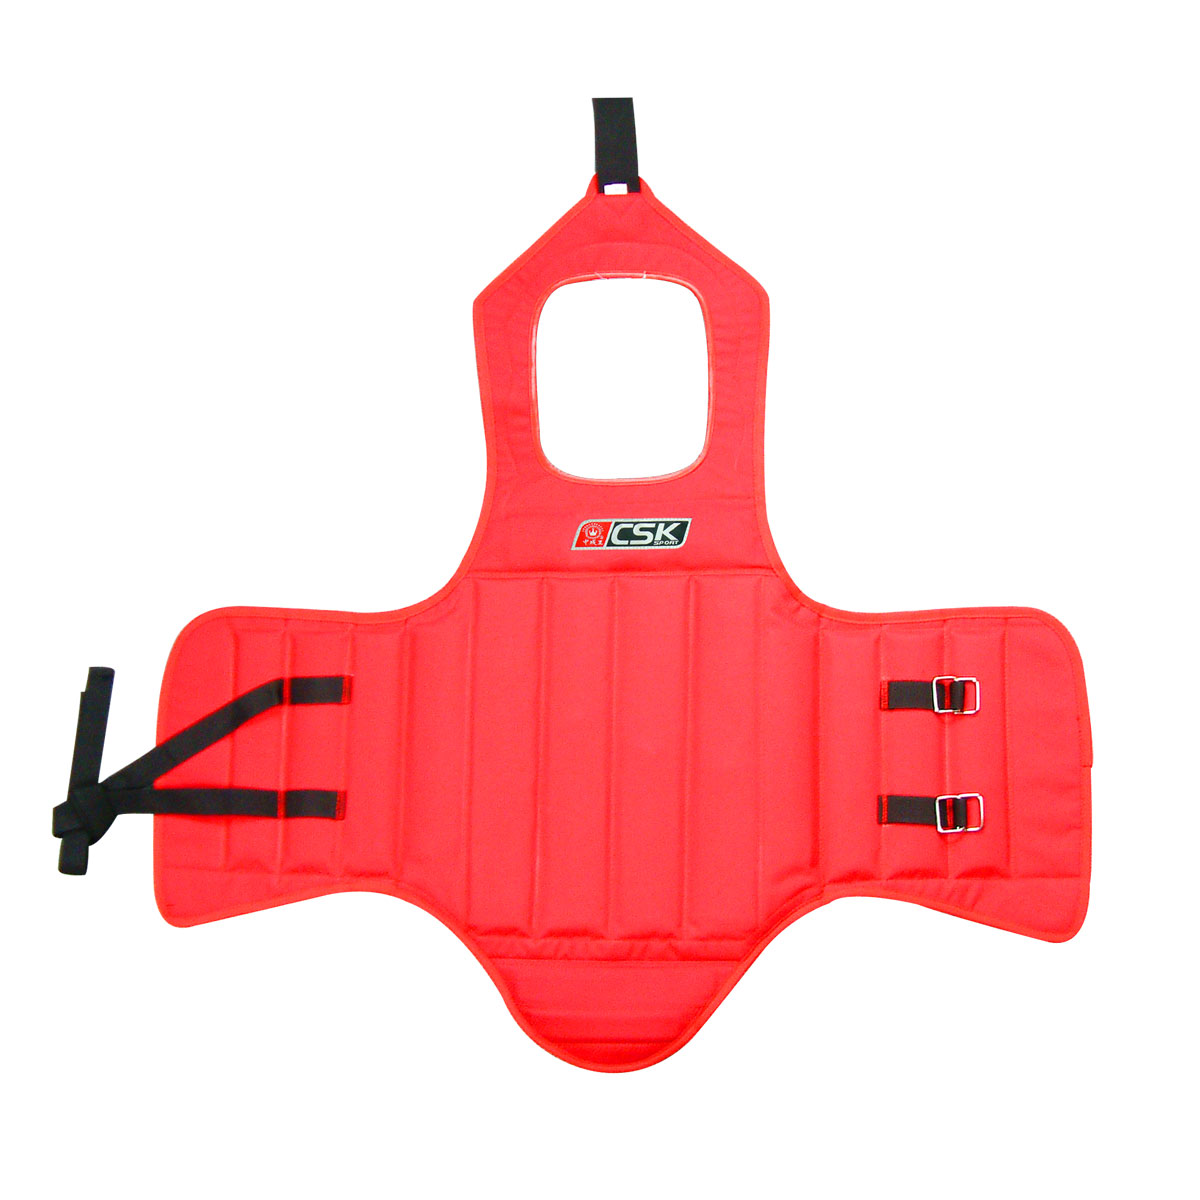 Wang zhongcheng genuine amulet chest protector sanda sanda training game with fighting protective gear